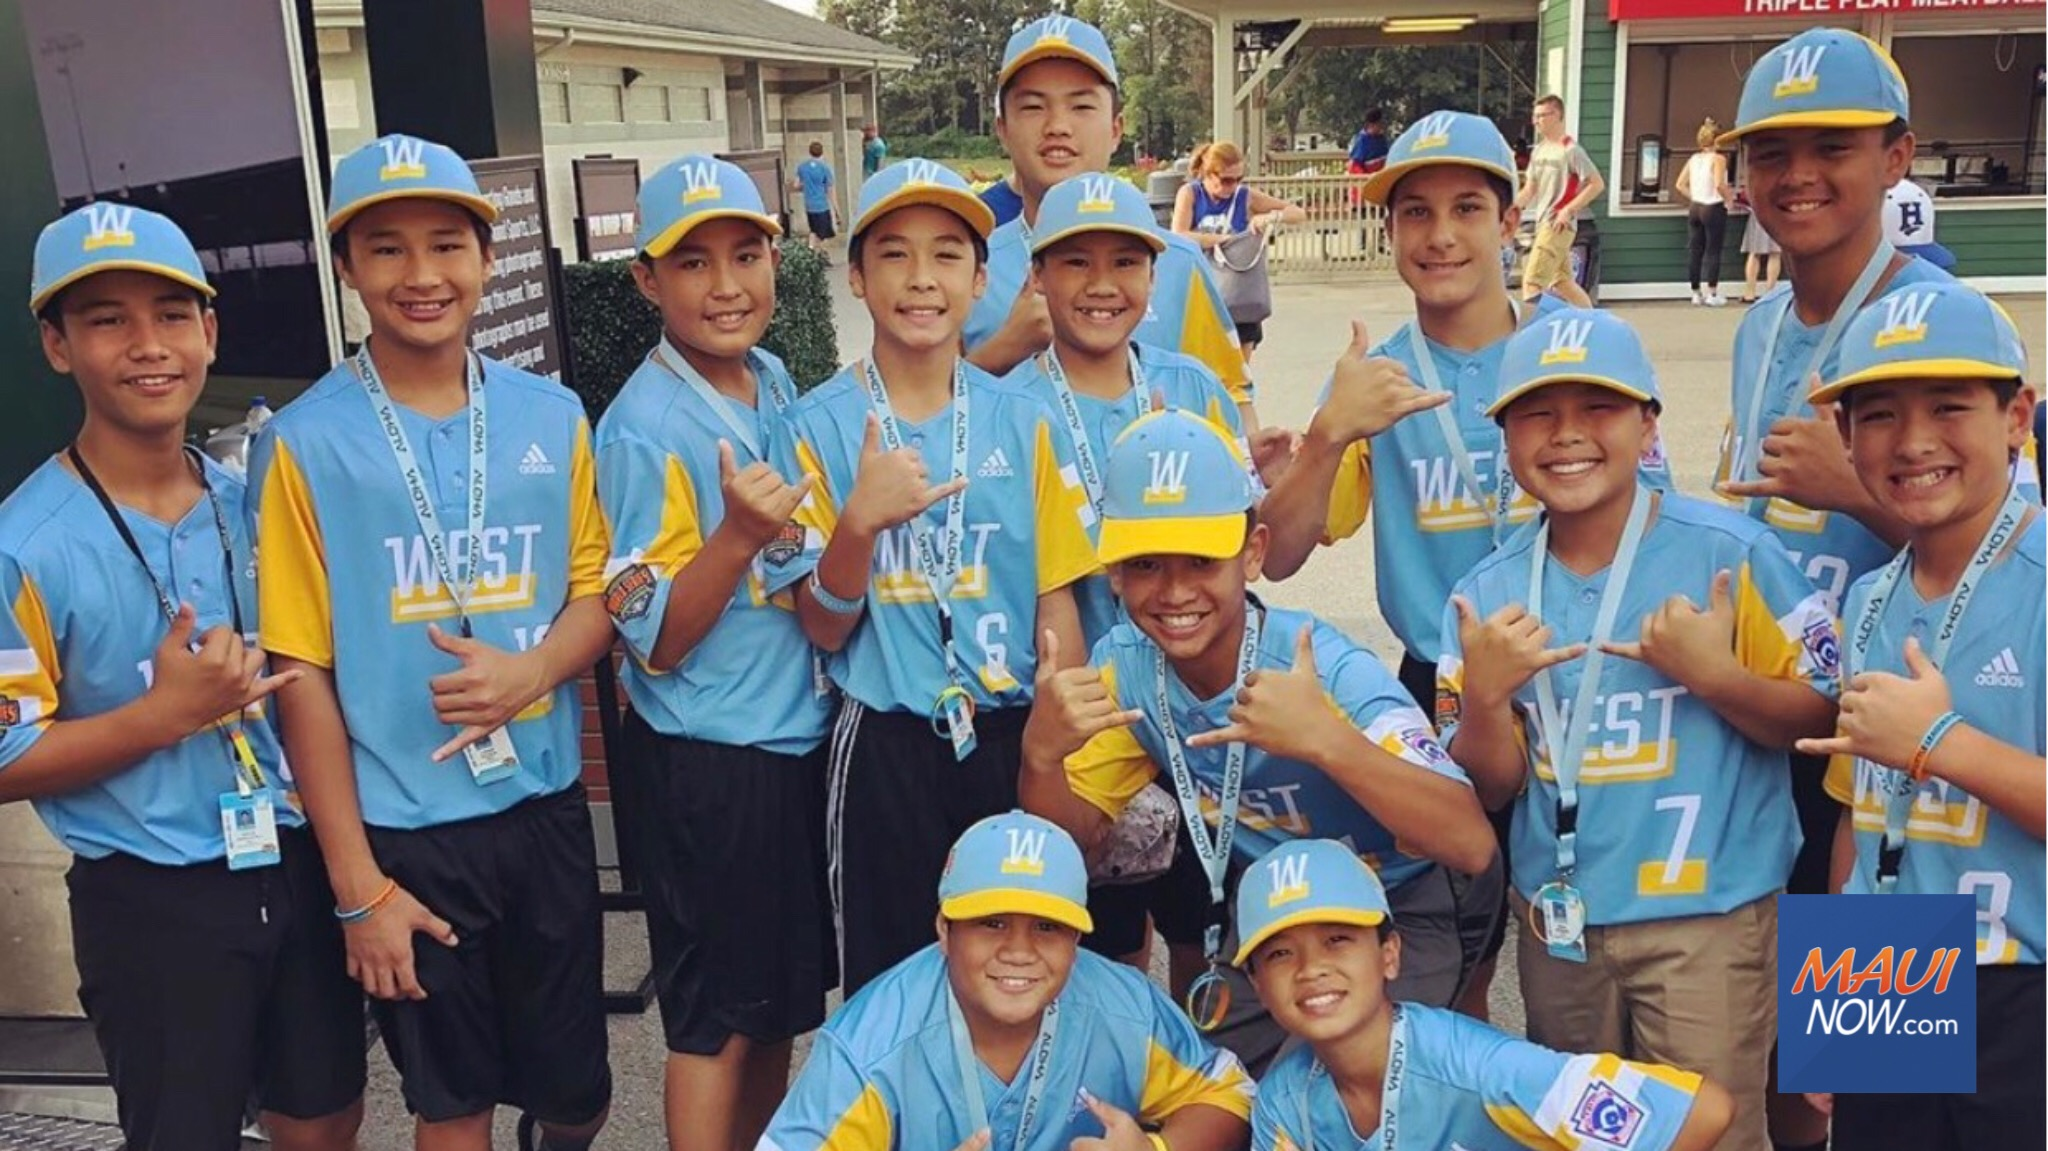 Maui Advances to US Title Game in Little League World Series